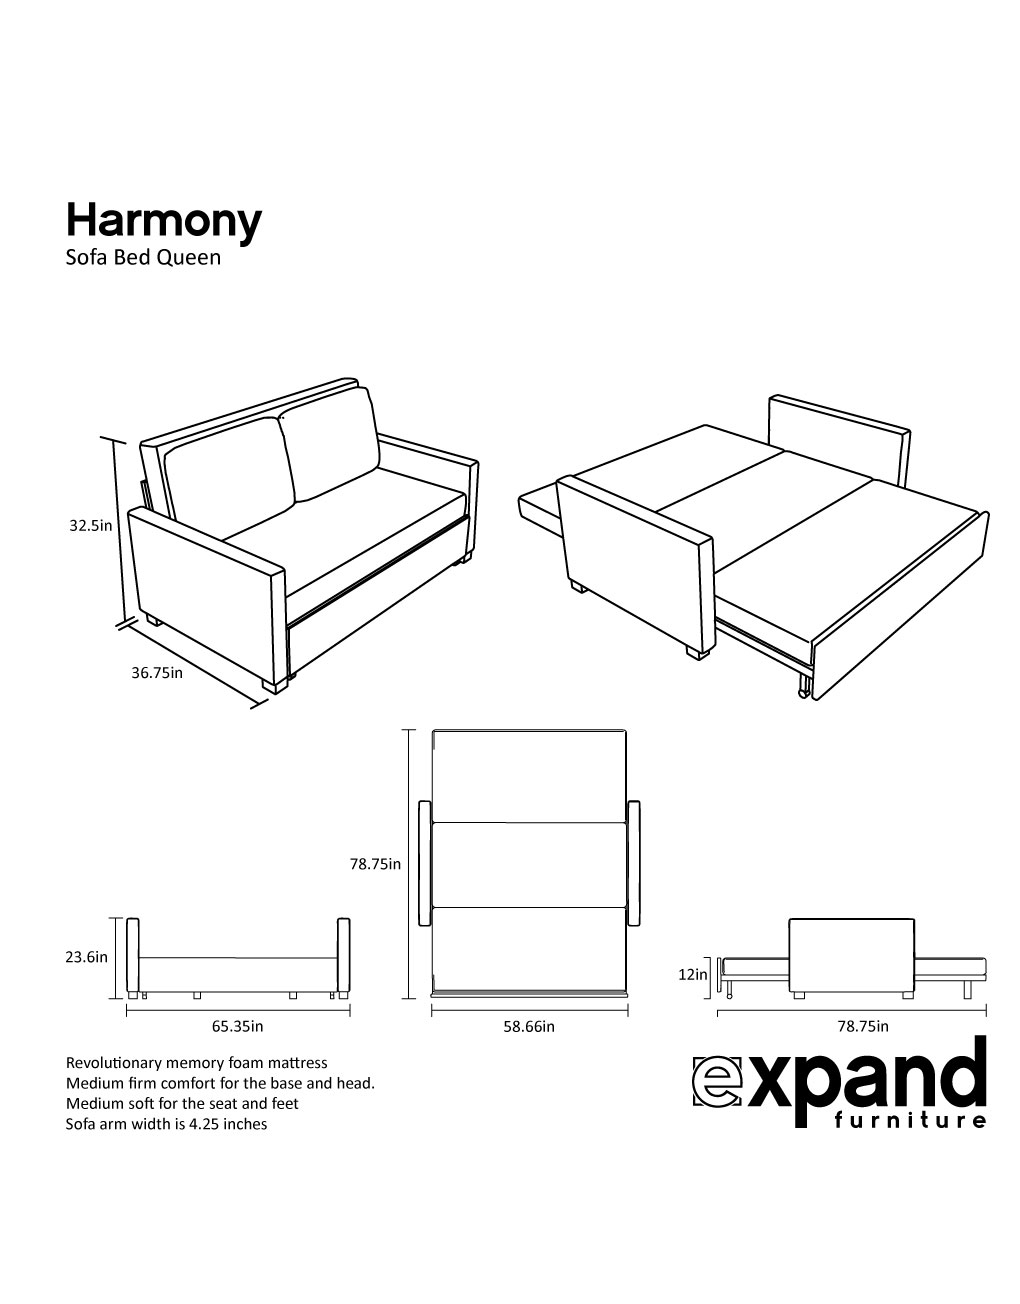 Standard Queen Size Bed Dimension Harmony Queen Size Memory Foam Sofa Bed